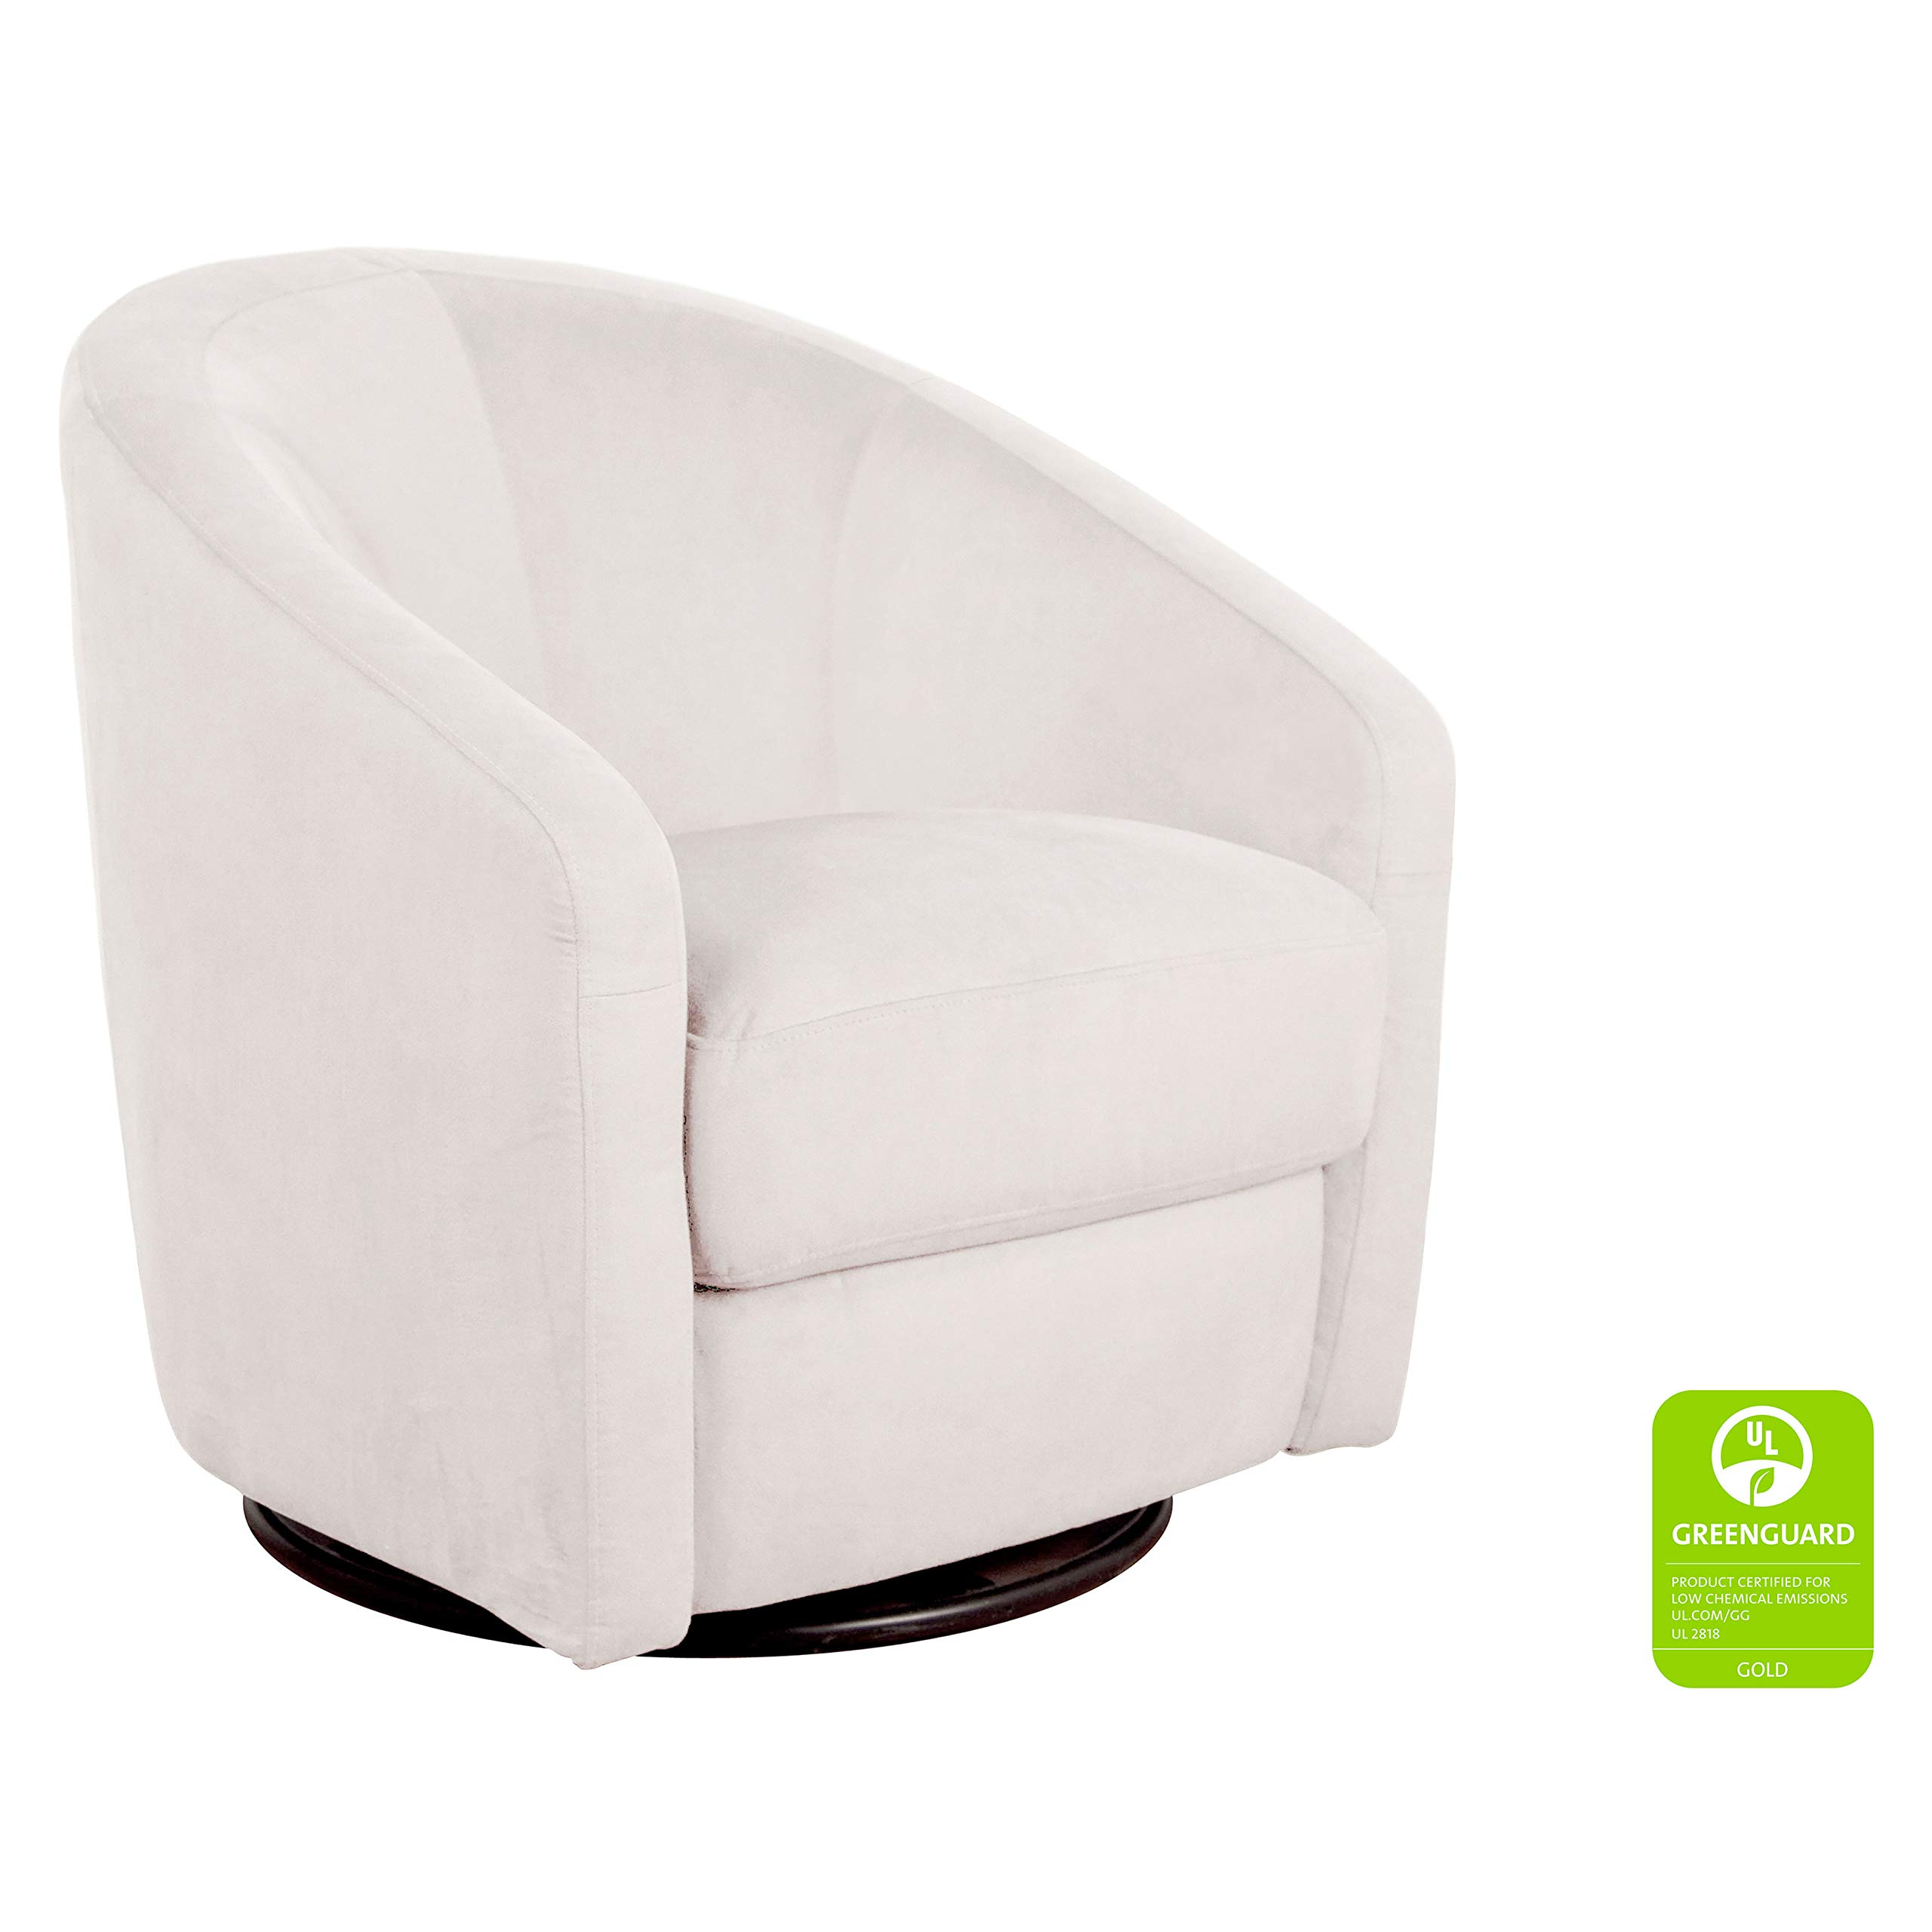 Super Best Rated In Glider Chairs Helpful Customer Reviews Creativecarmelina Interior Chair Design Creativecarmelinacom